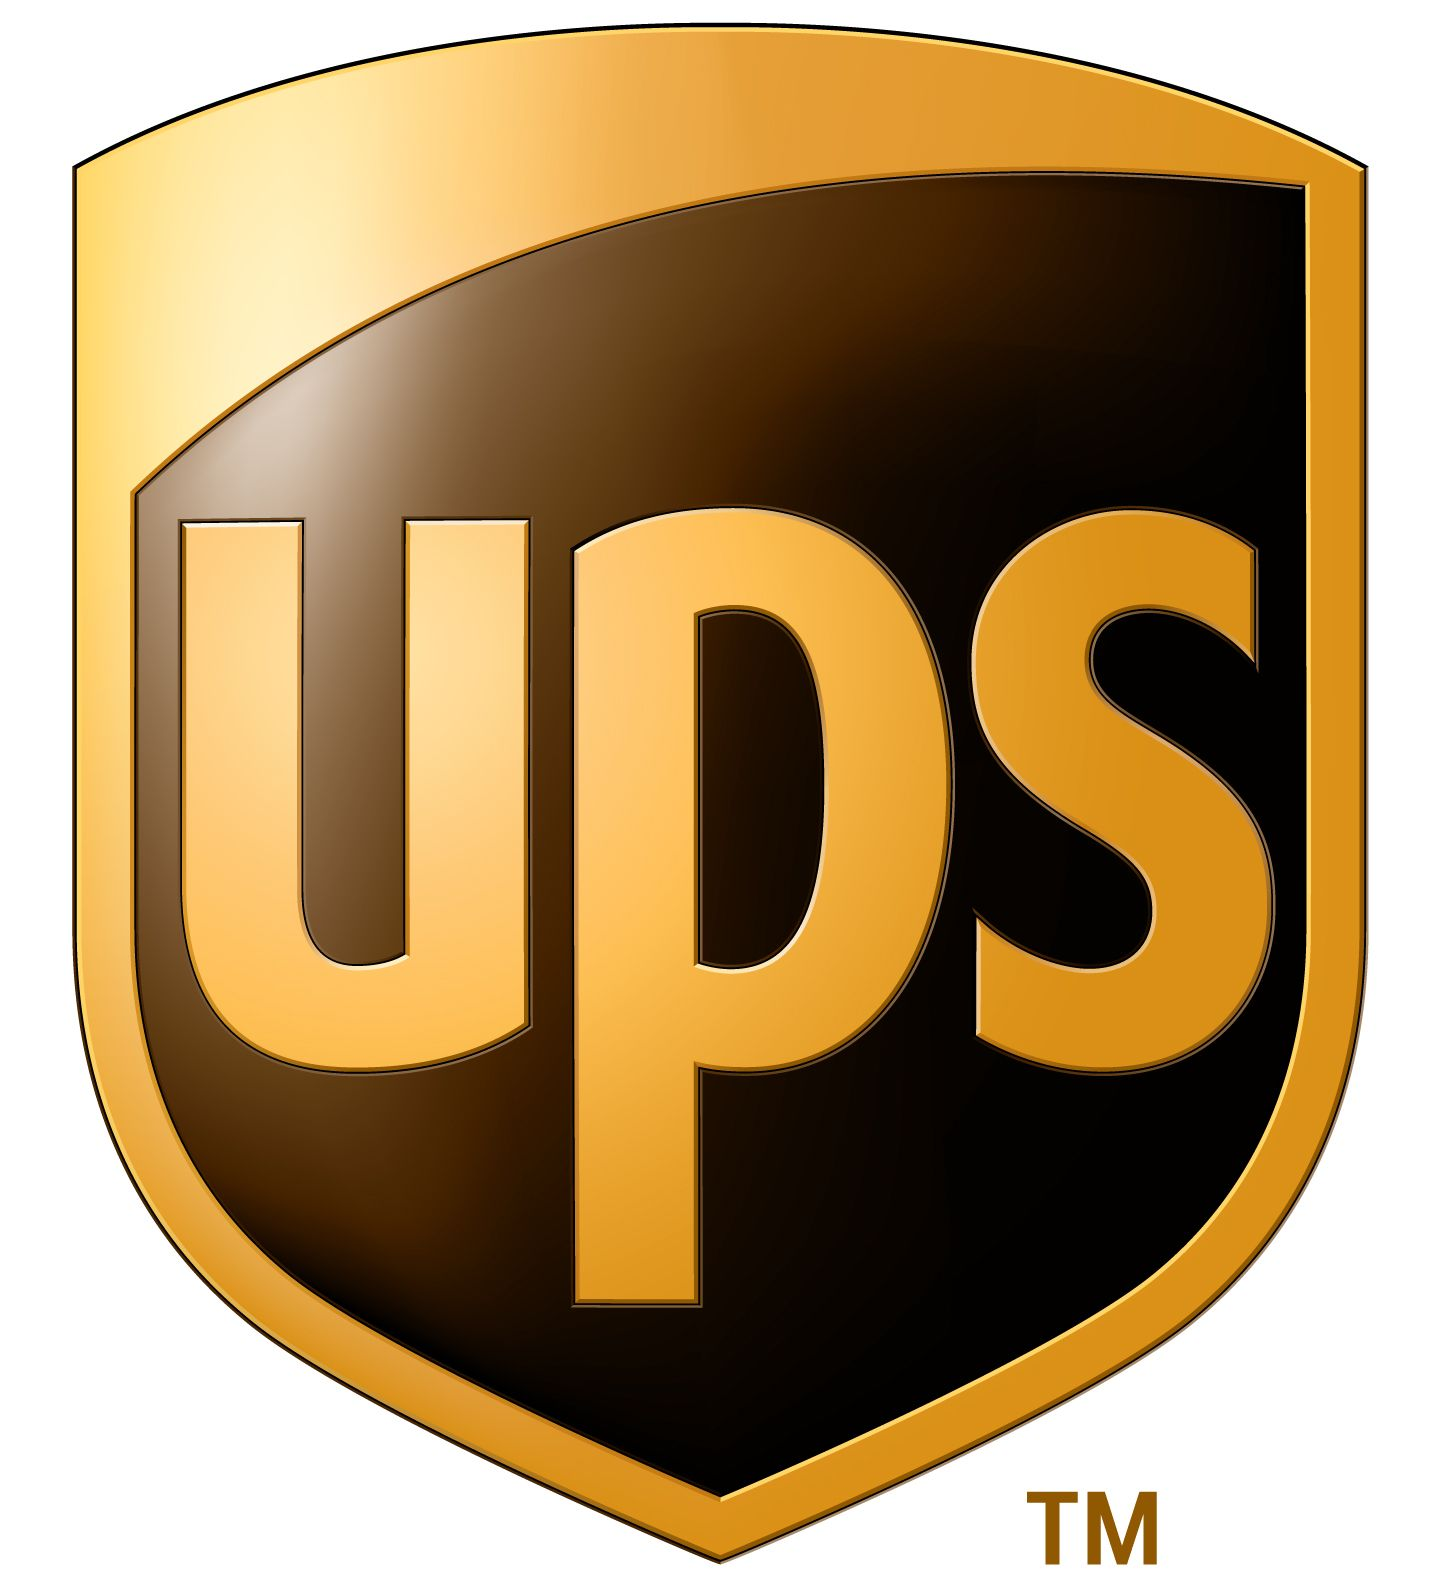 Shipping and returns, UPS logo color